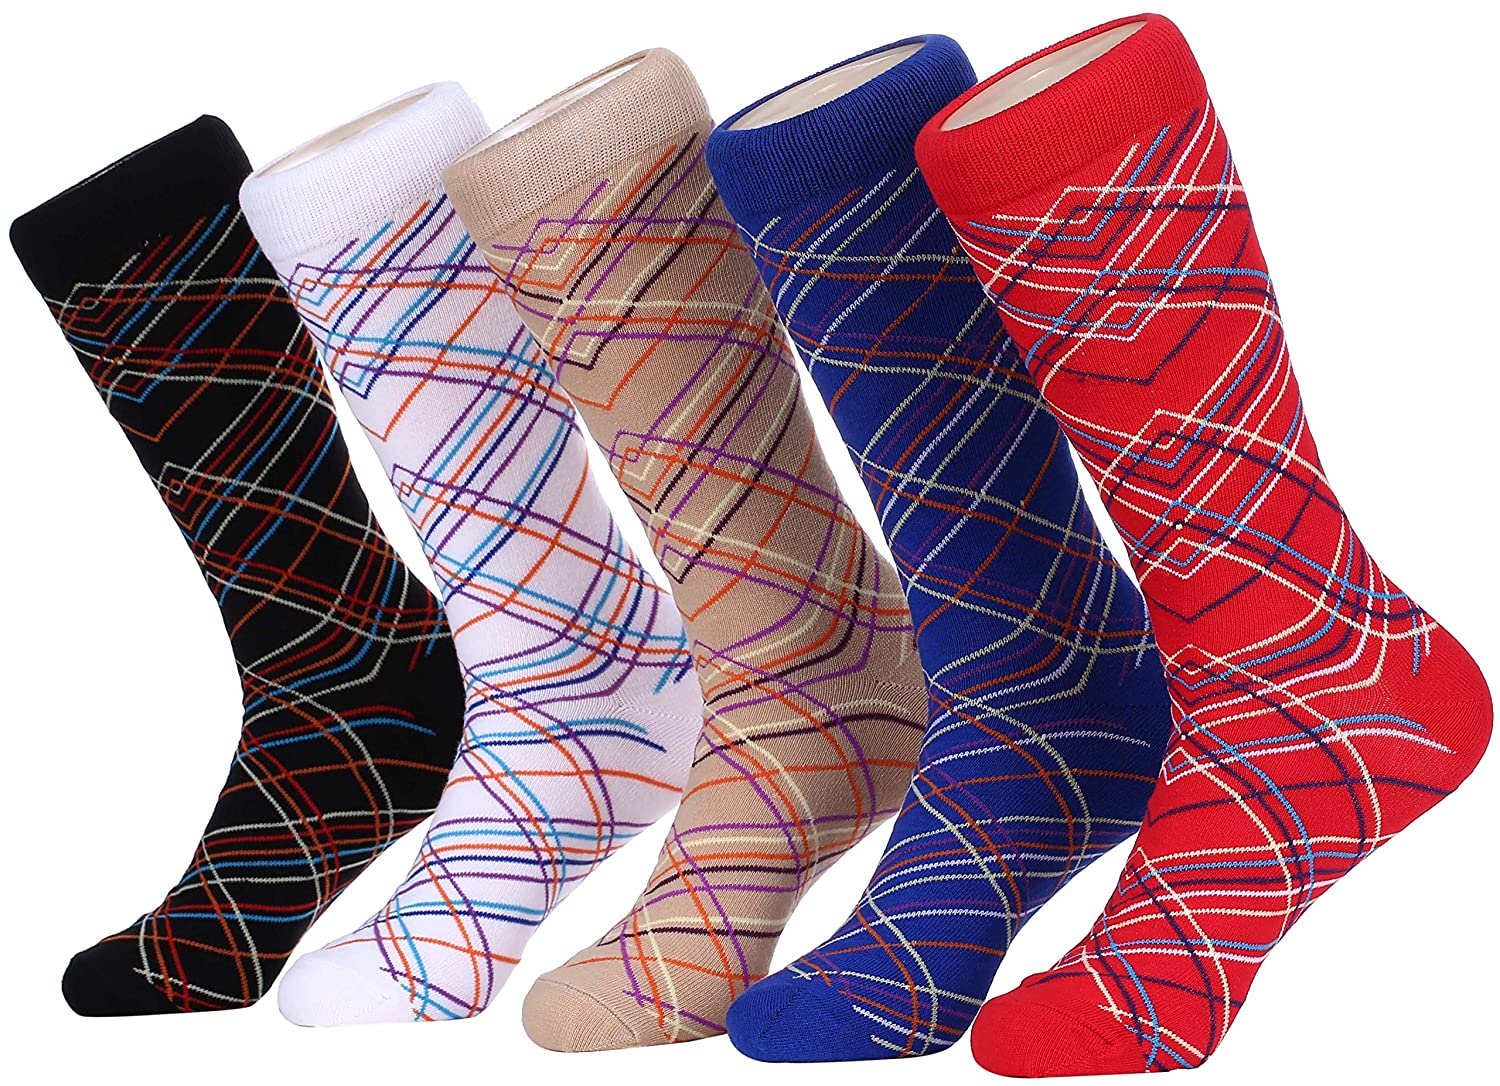 3b9b91fecf0a PRIME QUALITY – Marino men's dress socks consists of 80% Cotton 10% Nylon  and 10% Spandex. These men socks are snug yet cool and breathable, with  moisture ...